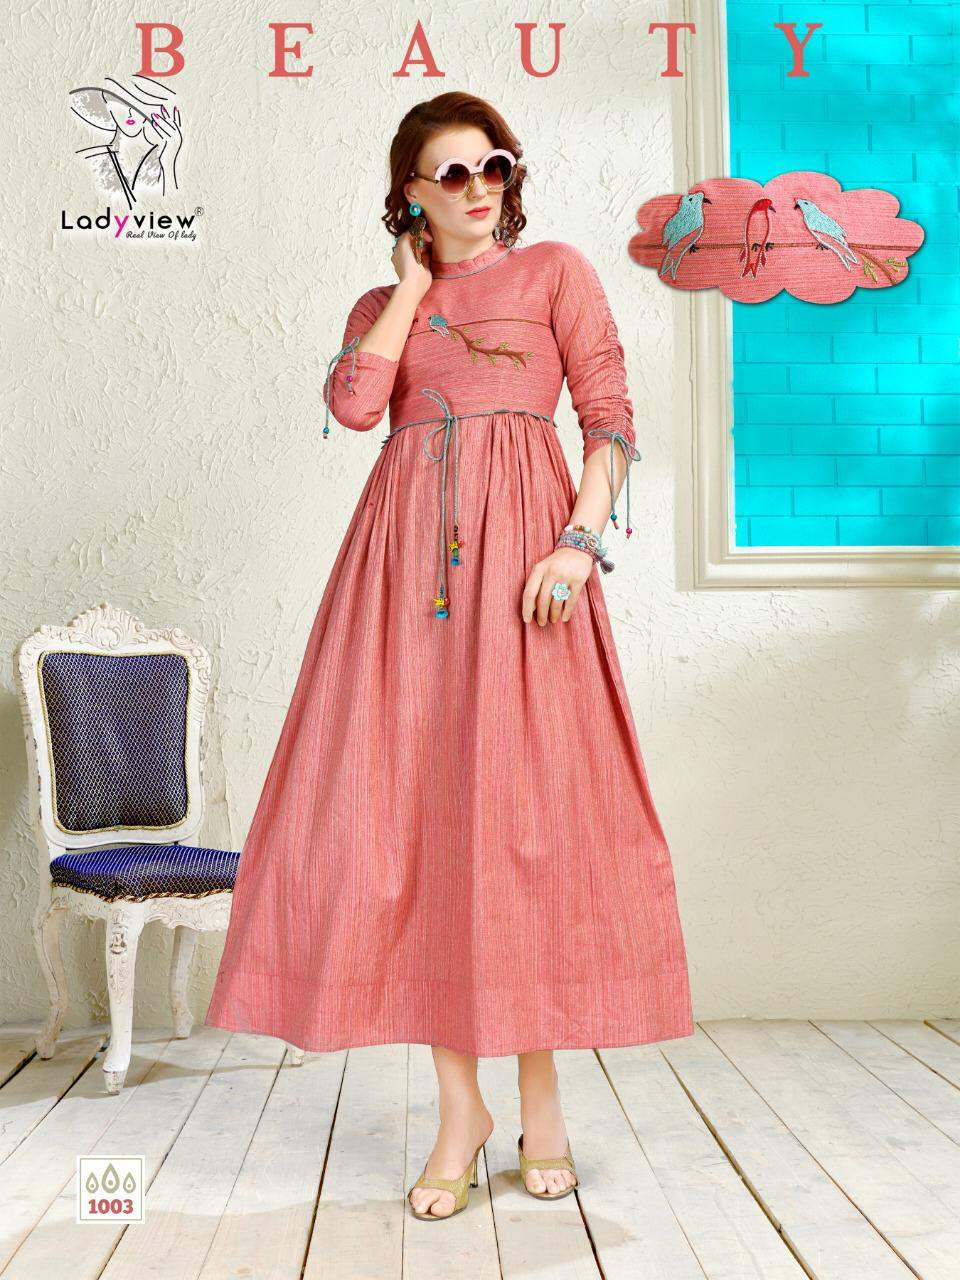 Ladyview Mango Dolly collection 4